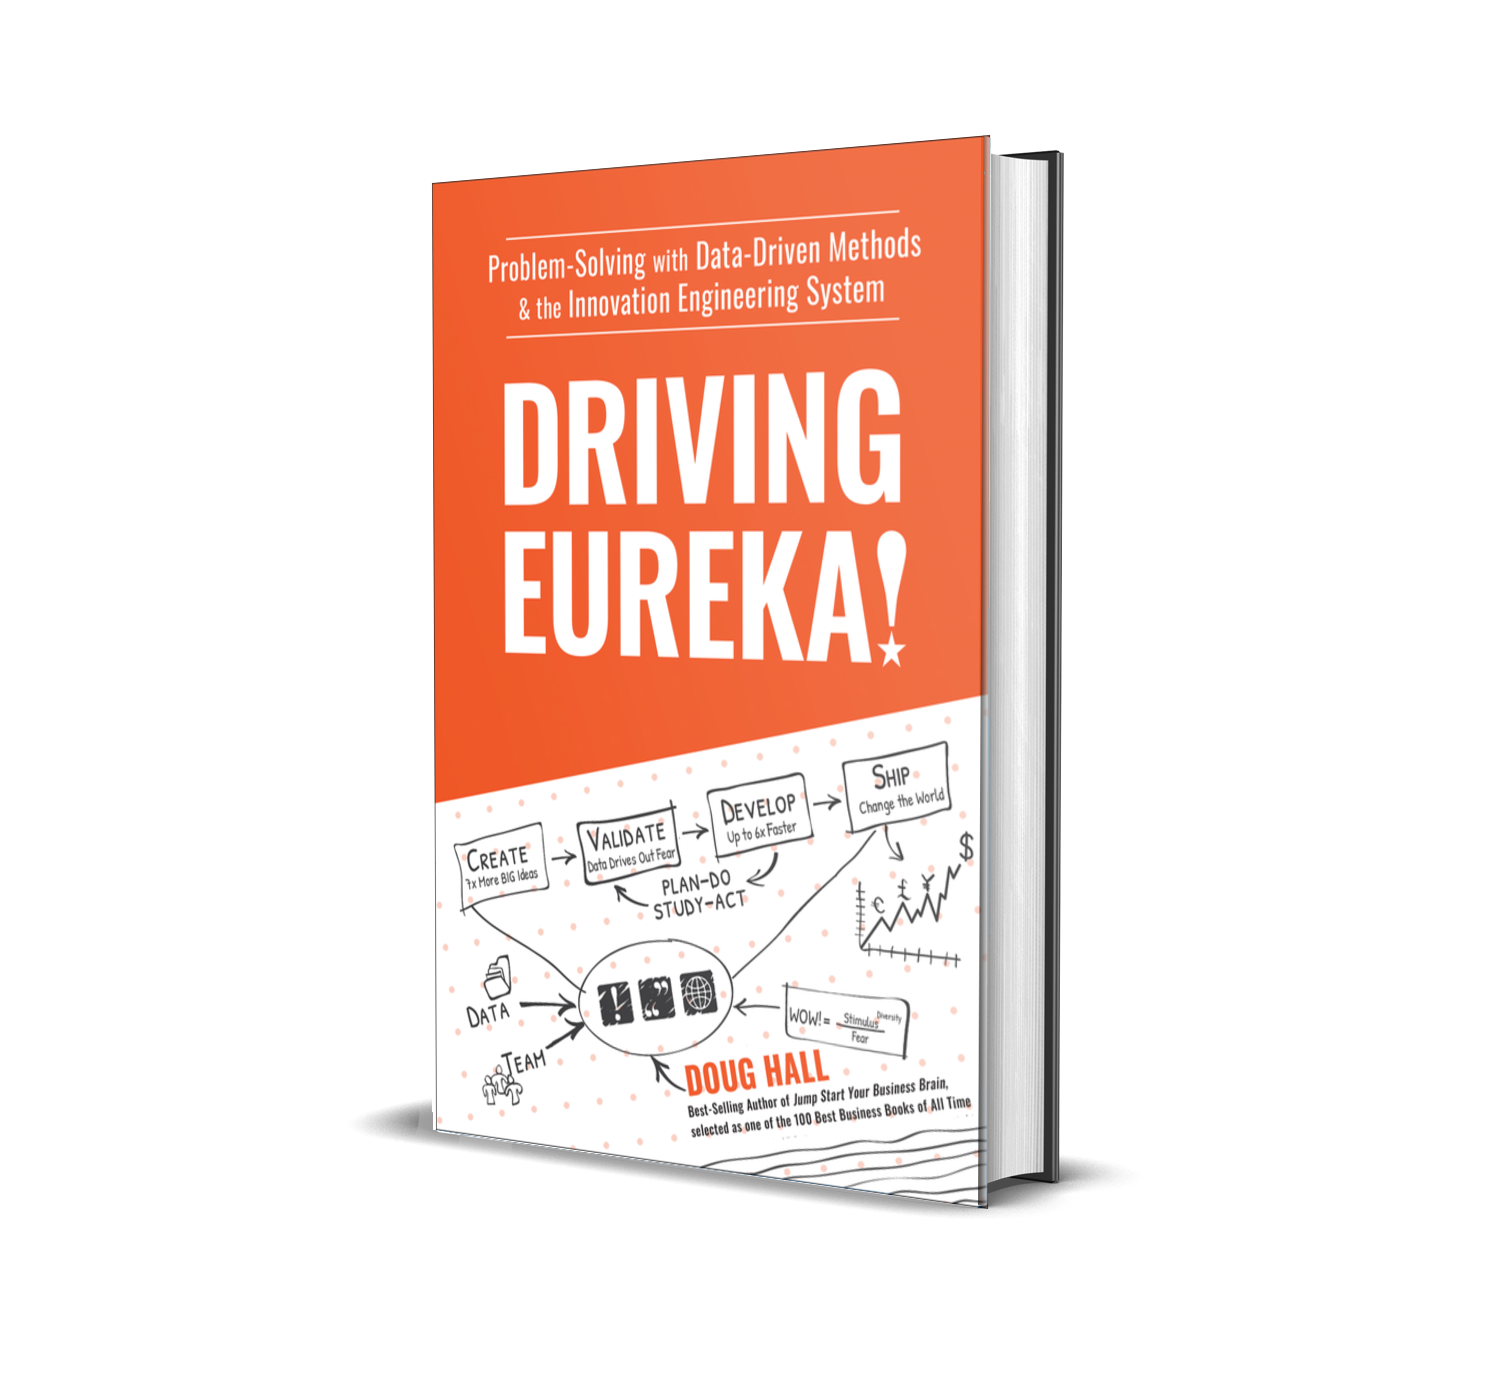 Driving Eureka! Problem-Solving with Data-Driven Methods and the Innovation Engineering System - The 7th release from Eureka! Ranch Founder - Doug Hall